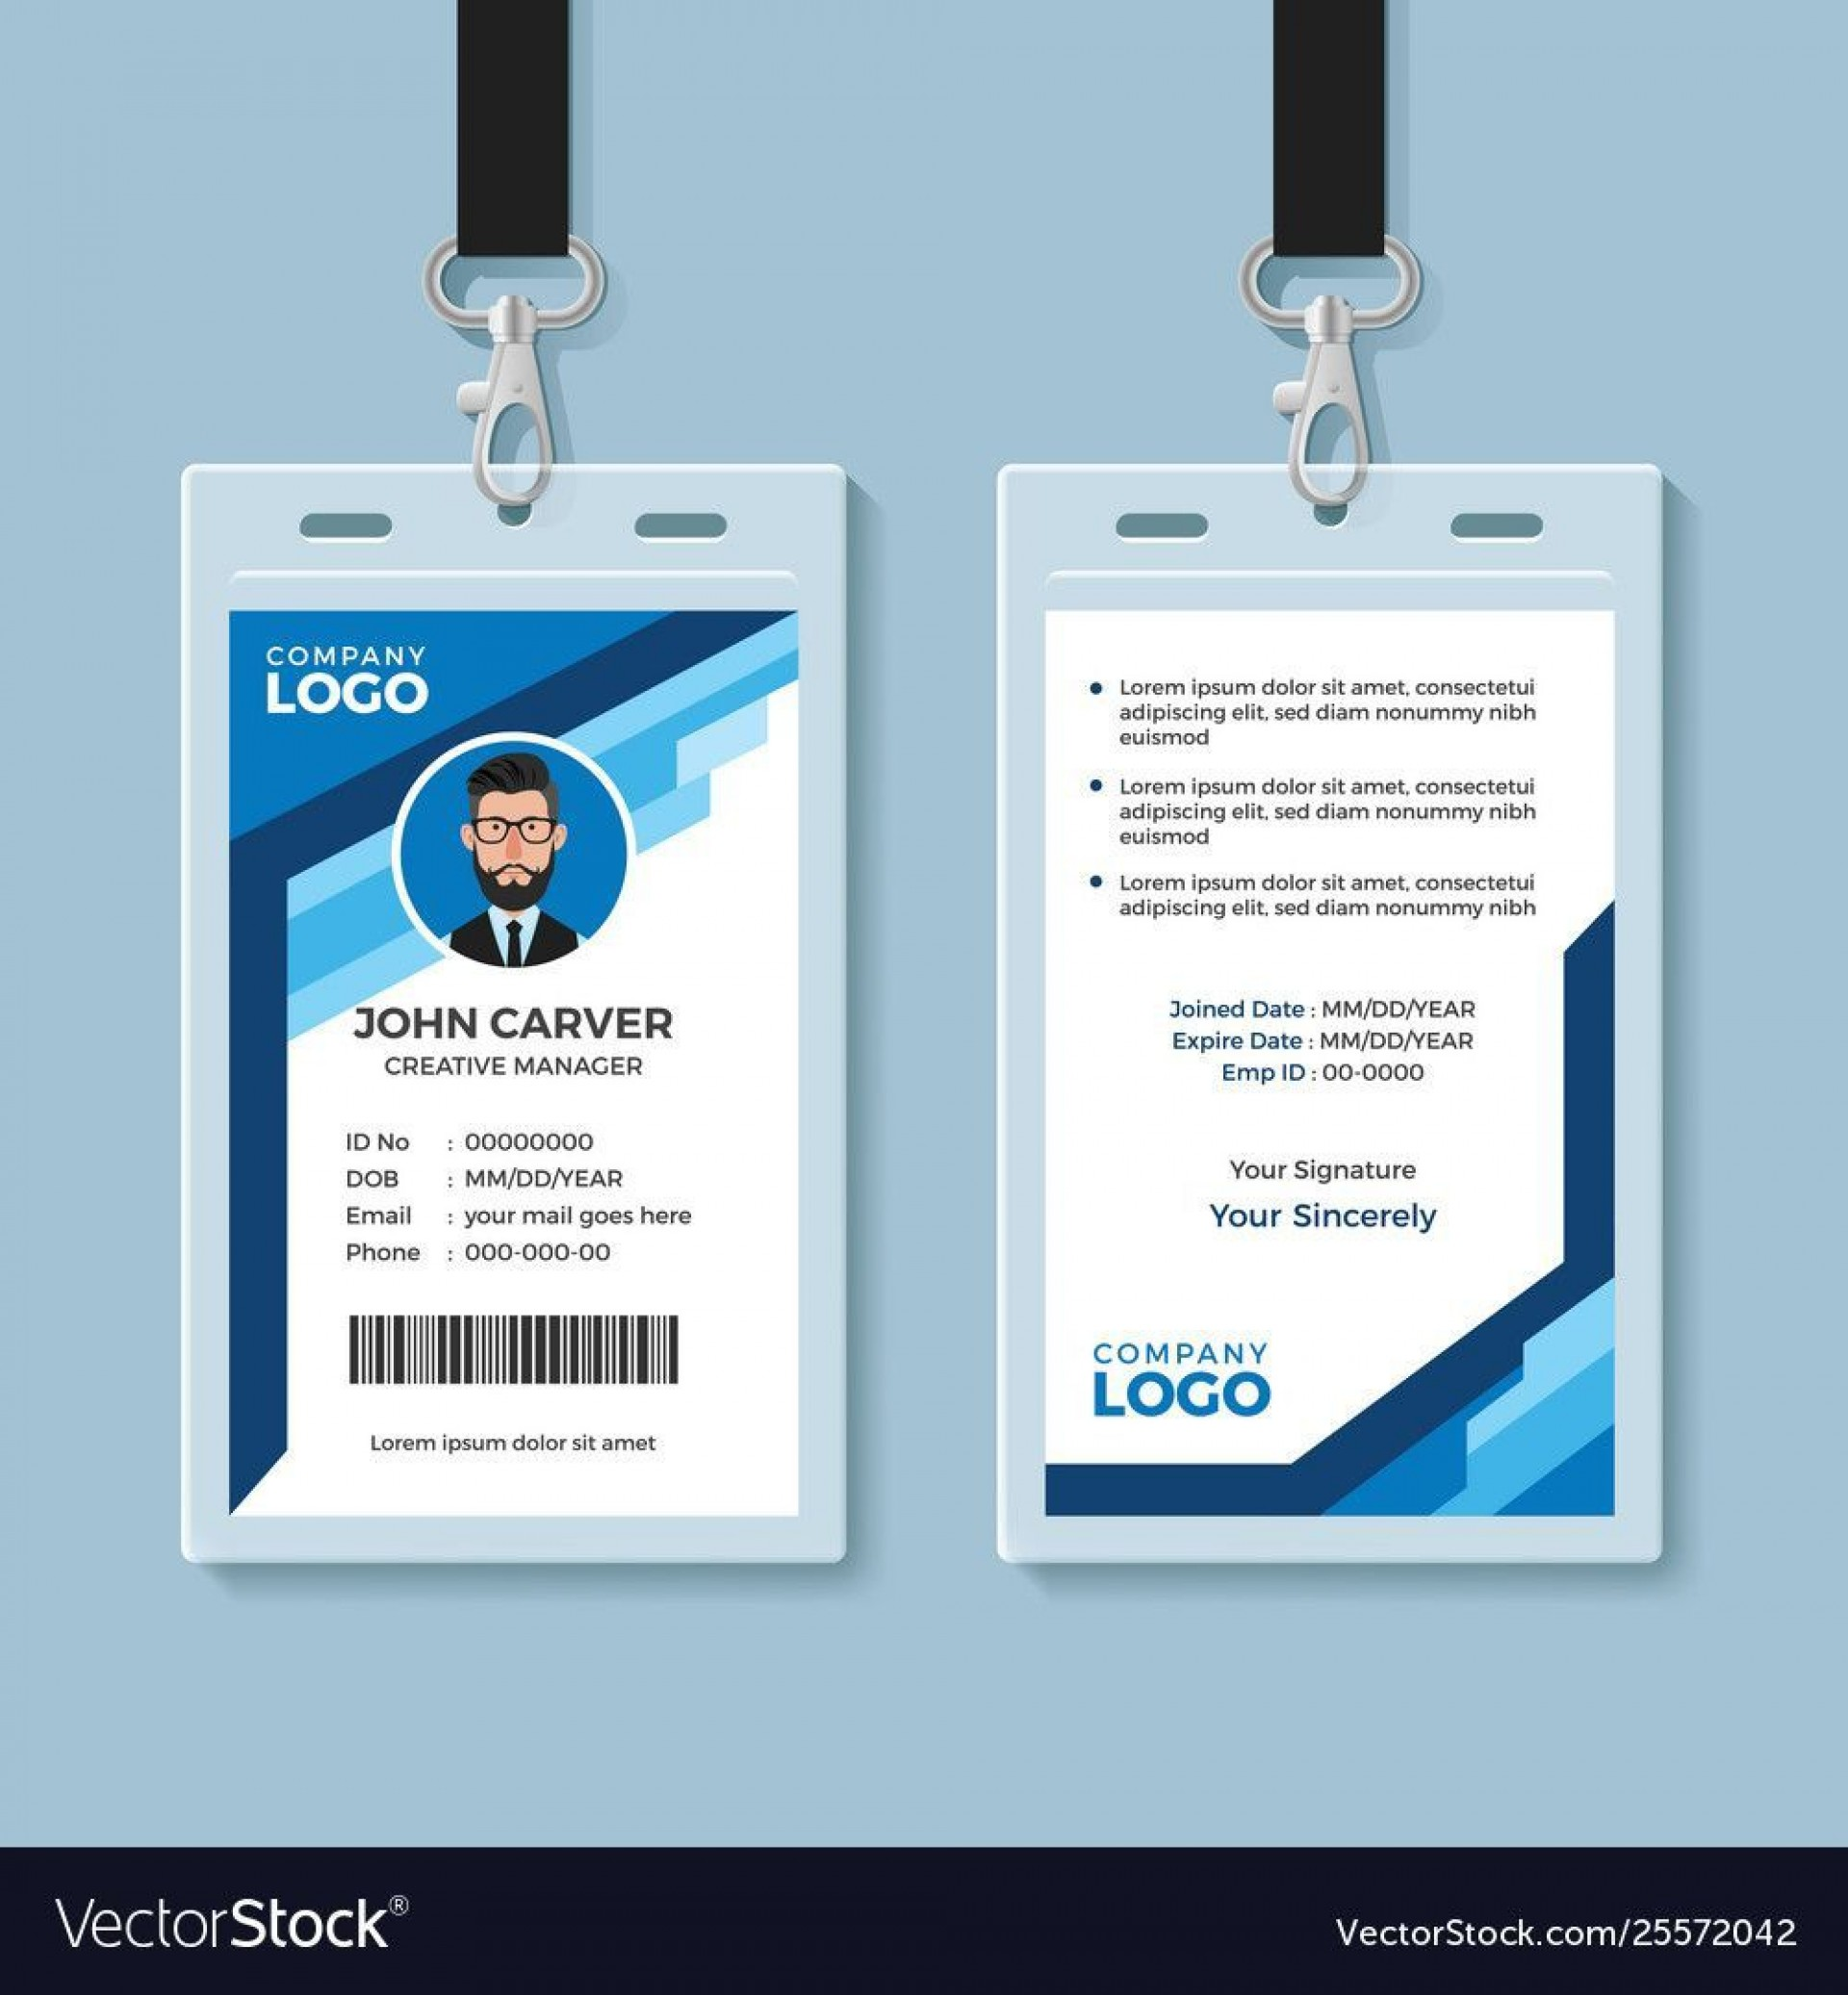 006 Breathtaking Id Badge Template Word Highest Clarity  Free Microsoft1920